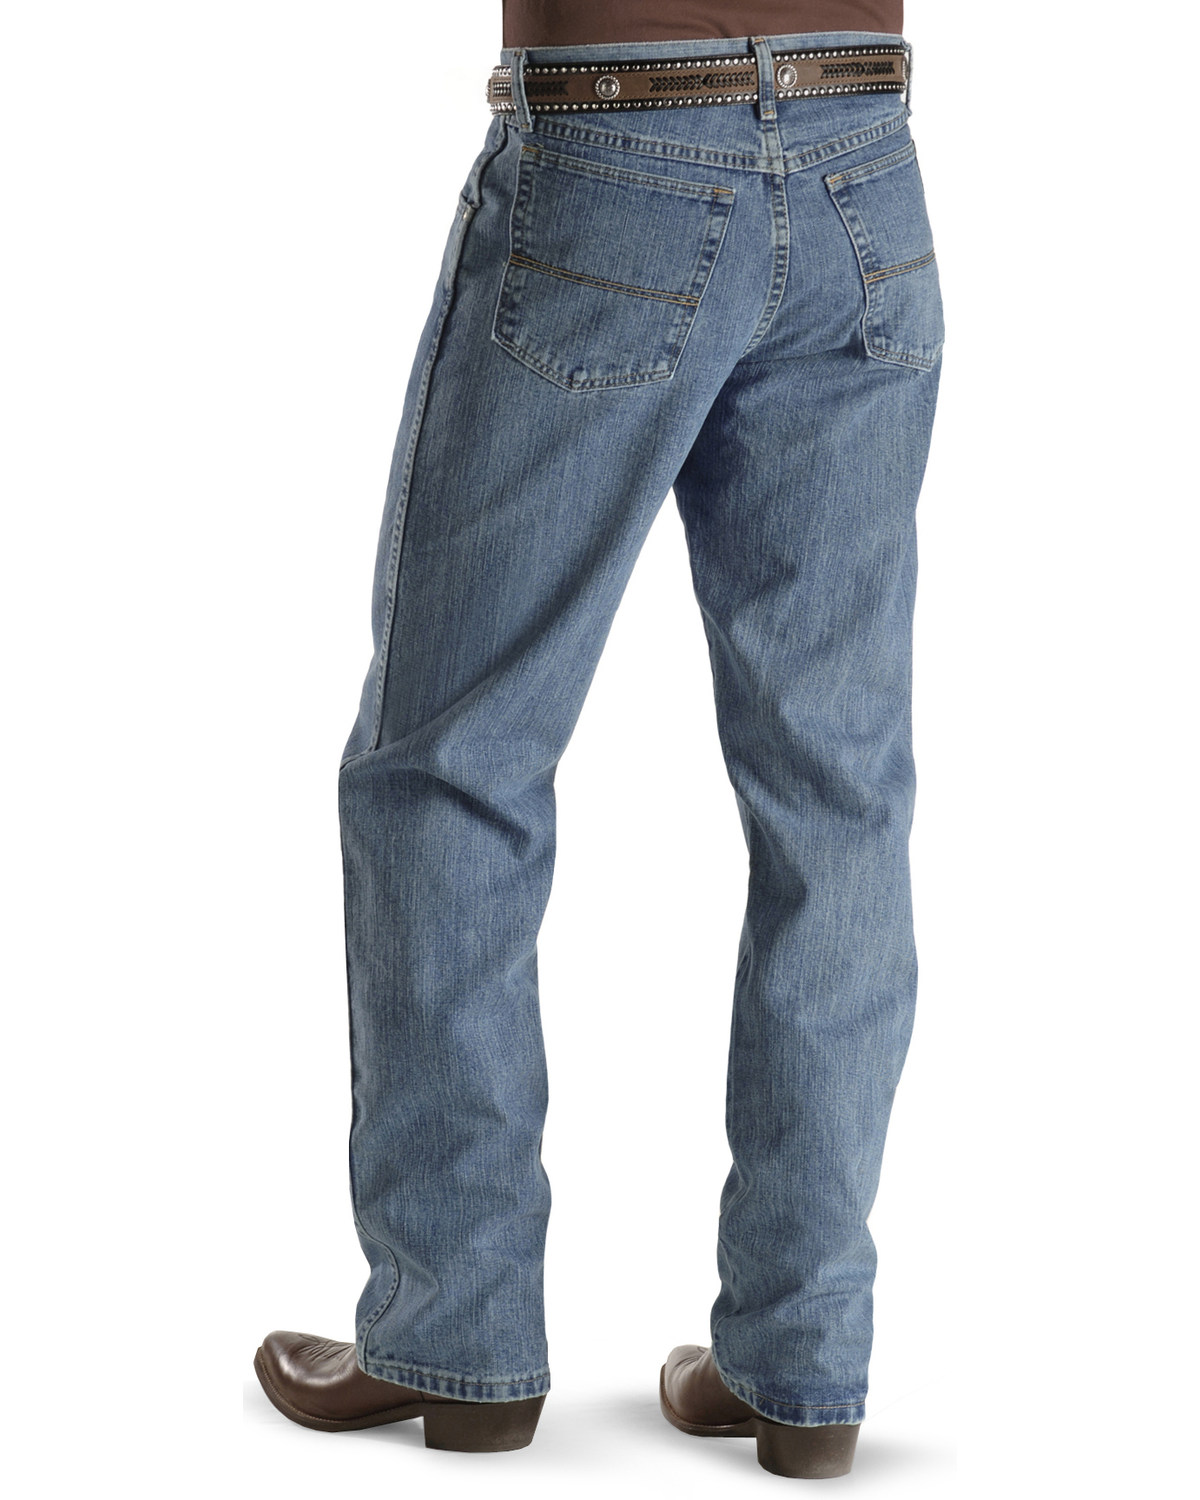 3eeaa4c3 Zoomed Image Wrangler 20X Jeans - No. 23 Relaxed Fit, Antique Blue, hi-res